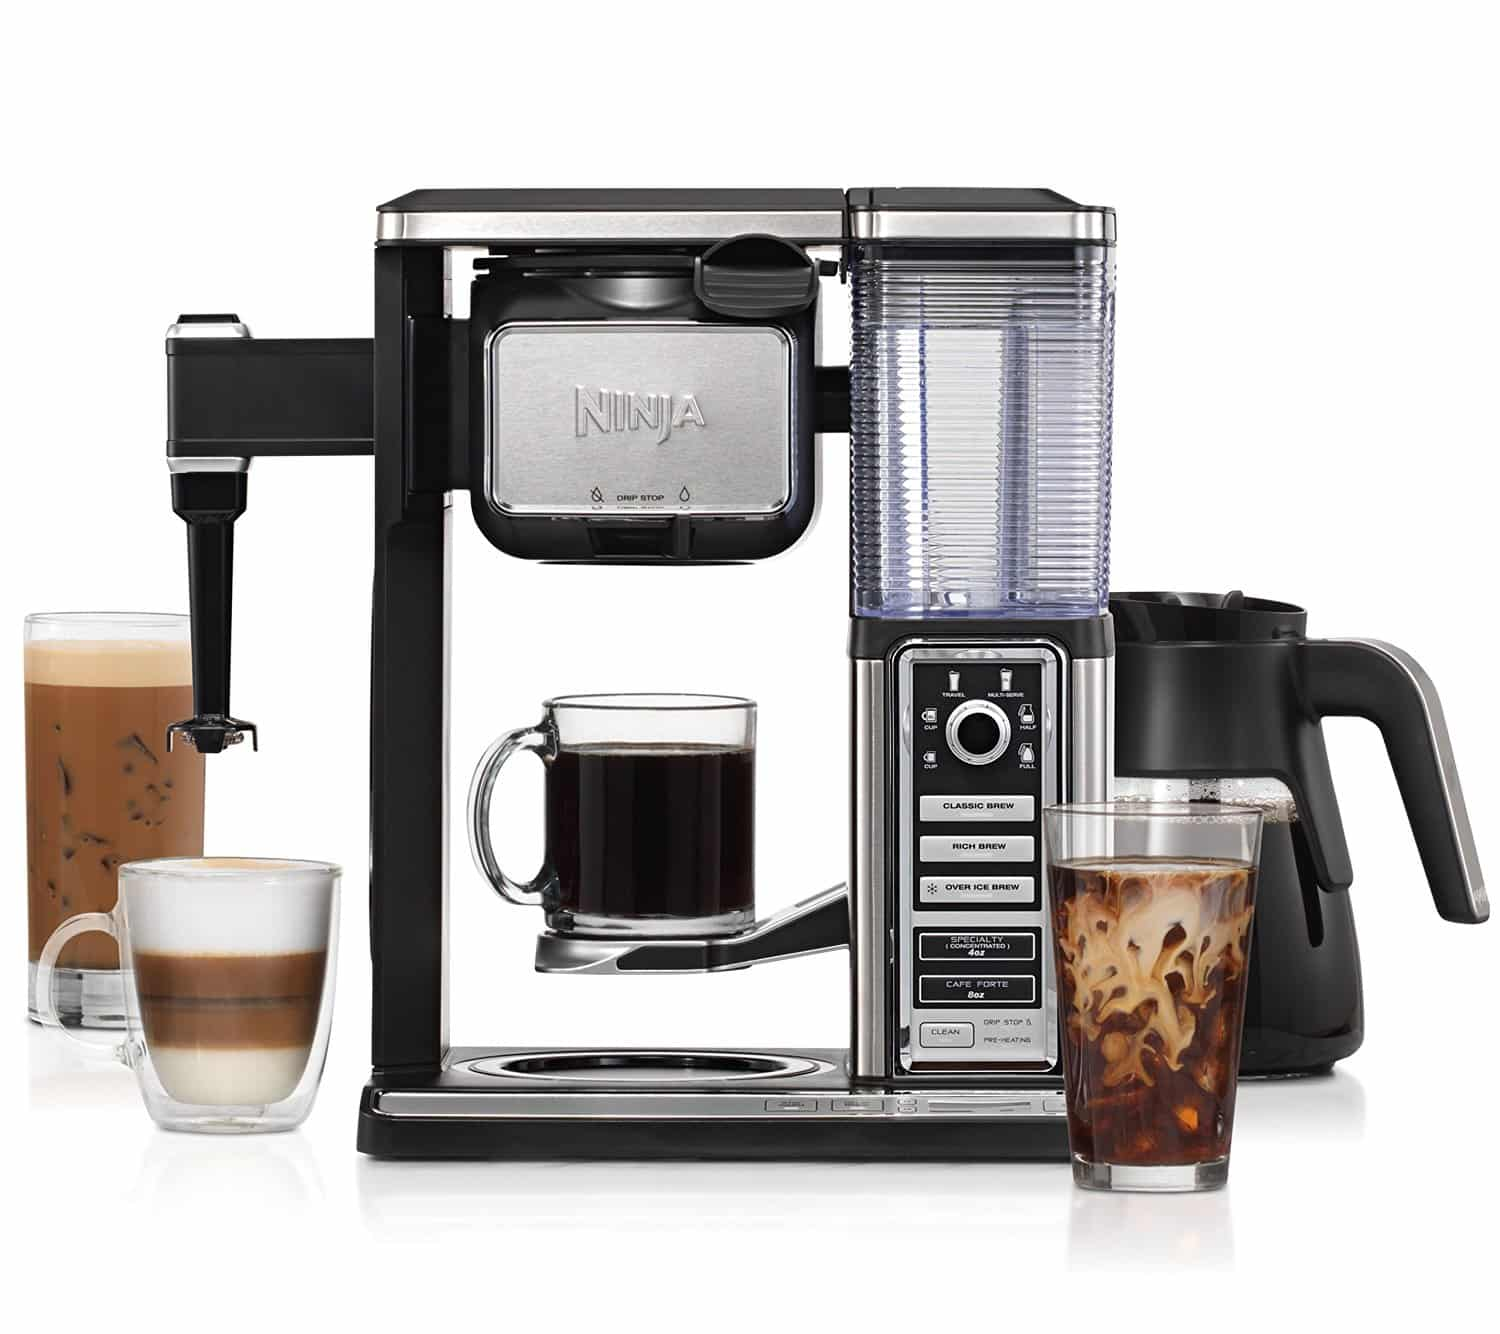 Top 10 best drip coffee makers in 2018 for Best luxury coffee maker